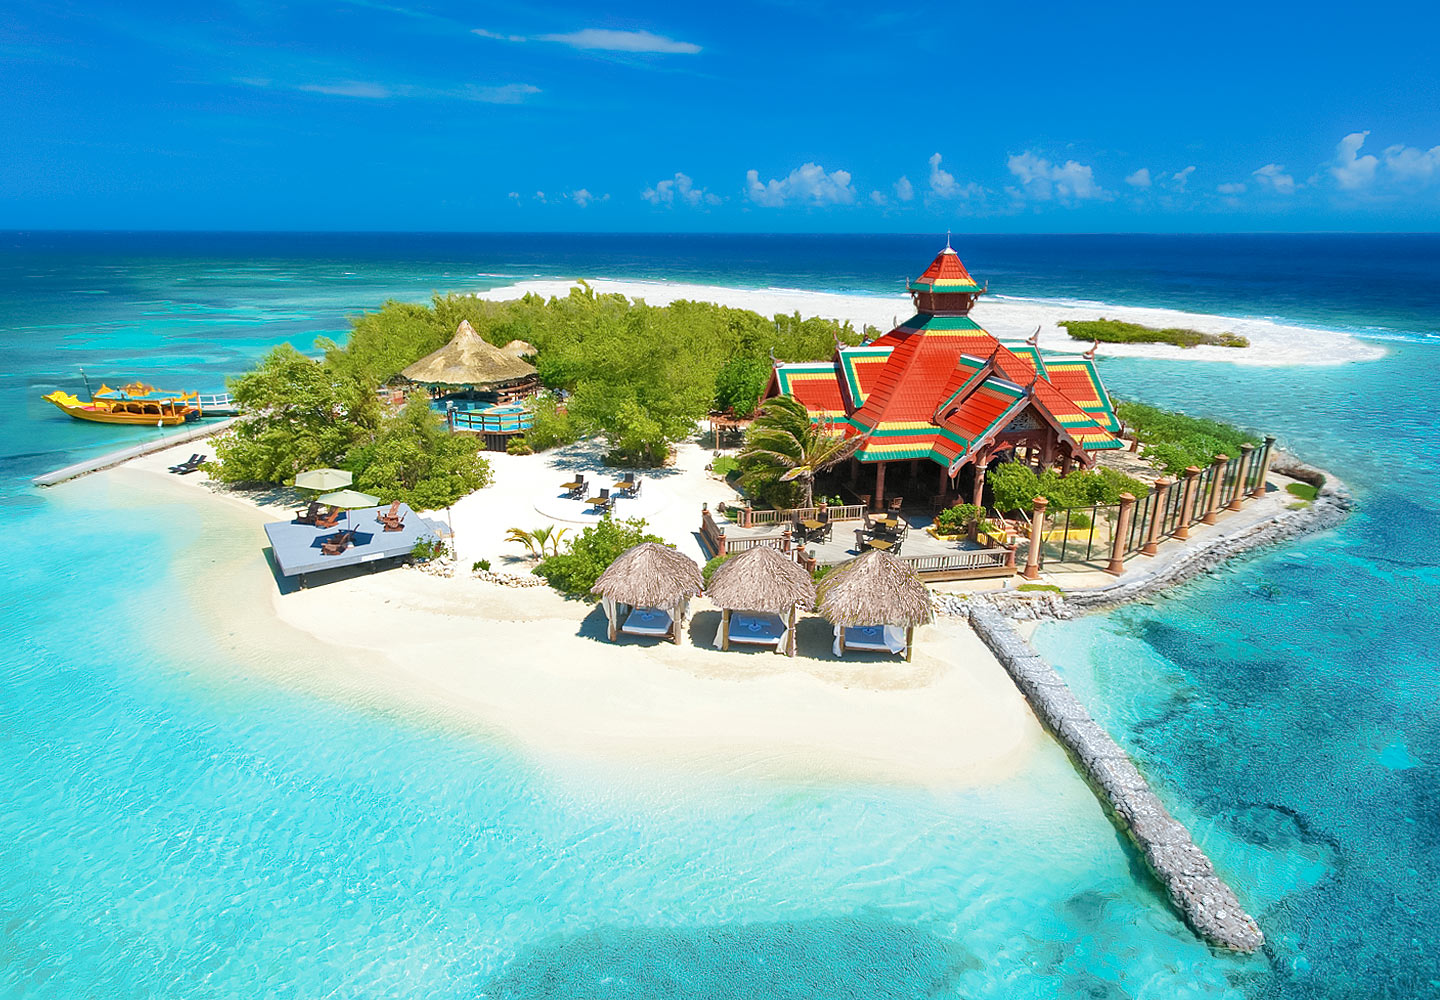 Sandals Royal Caribbean Resort Private Island, Montego Bay, Jamaica. https://www.jamaica-reggae-music-vacation.com/Sandals-Royal-Caribbean.html